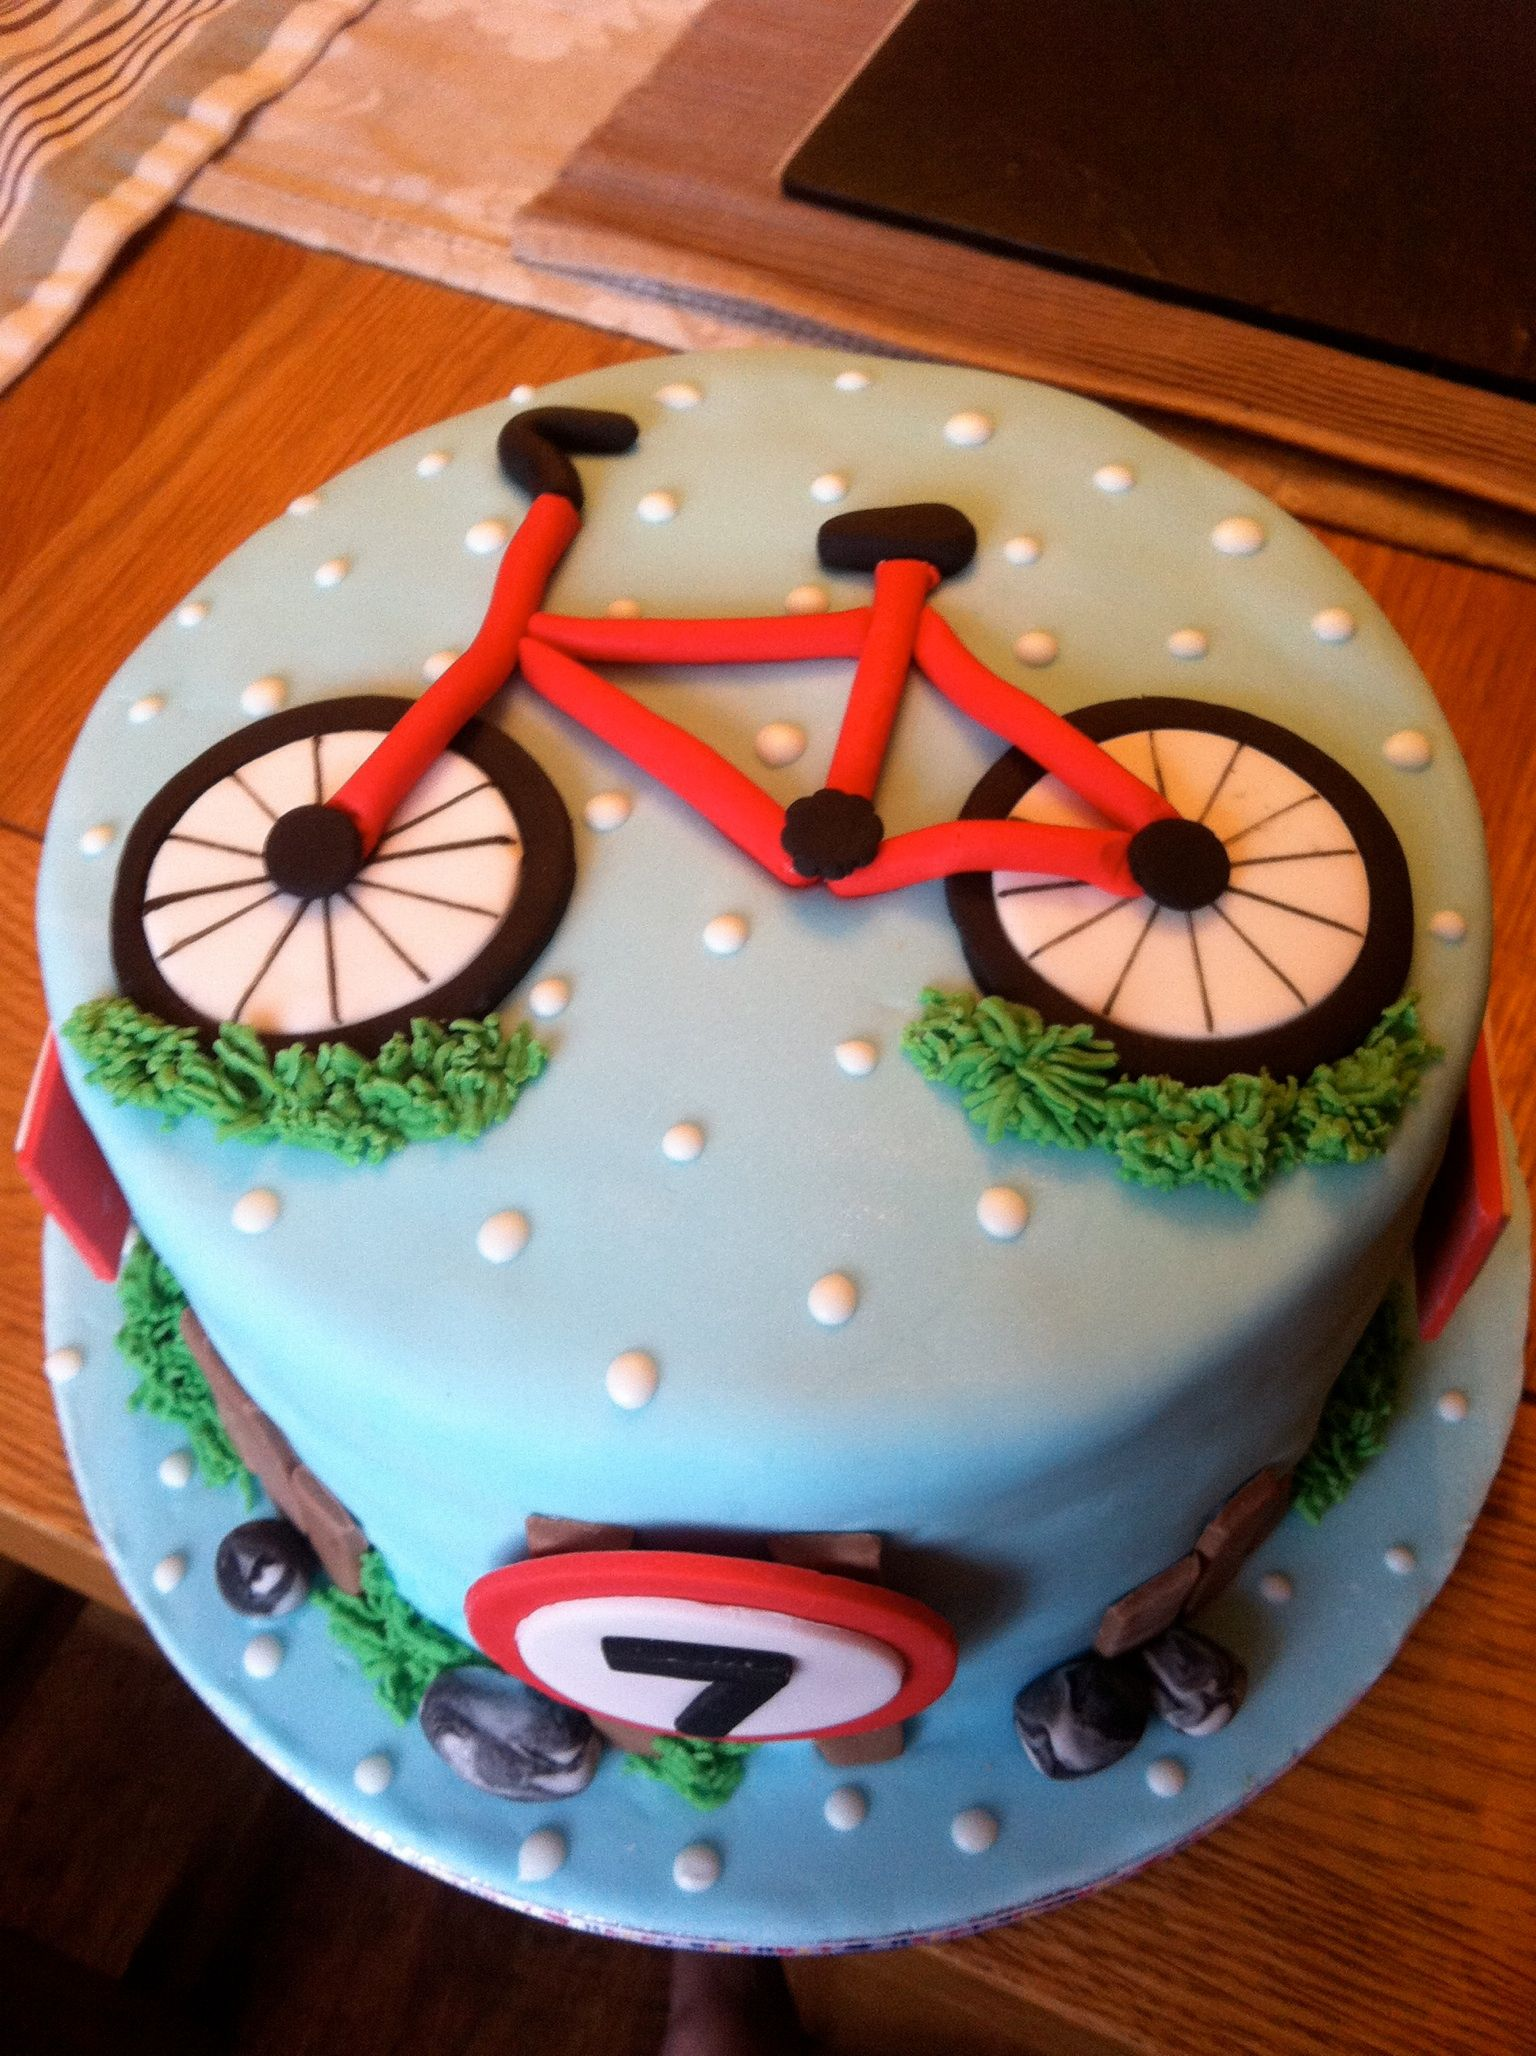 Admirable Bet This 7 Year Old Loved His Bike Birthday Cake With Images Funny Birthday Cards Online Overcheapnameinfo